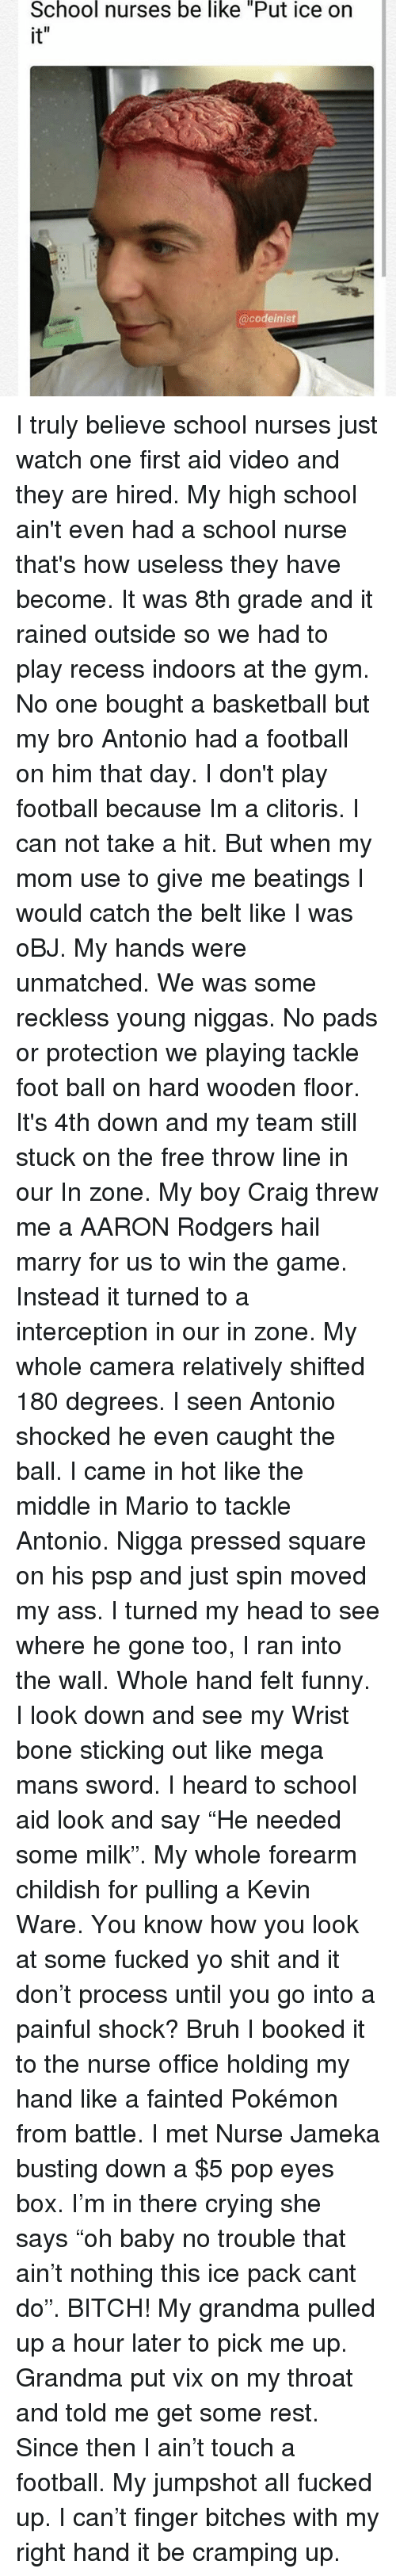 """Aaron Rodgers, Ass, and Basketball: School nurses be like """"Put ice on  it  @codeinist I truly believe school nurses just watch one first aid video and they are hired. My high school ain't even had a school nurse that's how useless they have become. It was 8th grade and it rained outside so we had to play recess indoors at the gym. No one bought a basketball but my bro Antonio had a football on him that day. I don't play football because Im a clitoris. I can not take a hit. But when my mom use to give me beatings I would catch the belt like I was oBJ. My hands were unmatched. We was some reckless young niggas. No pads or protection we playing tackle foot ball on hard wooden floor. It's 4th down and my team still stuck on the free throw line in our In zone. My boy Craig threw me a AARON Rodgers hail marry for us to win the game. Instead it turned to a interception in our in zone. My whole camera relatively shifted 180 degrees. I seen Antonio shocked he even caught the ball. I came in hot like the middle in Mario to tackle Antonio. Nigga pressed square on his psp and just spin moved my ass. I turned my head to see where he gone too, I ran into the wall. Whole hand felt funny. I look down and see my Wrist bone sticking out like mega mans sword. I heard to school aid look and say """"He needed some milk"""". My whole forearm childish for pulling a Kevin Ware. You know how you look at some fucked yo shit and it don't process until you go into a painful shock? Bruh I booked it to the nurse office holding my hand like a fainted Pokémon from battle. I met Nurse Jameka busting down a $5 pop eyes box. I'm in there crying she says """"oh baby no trouble that ain't nothing this ice pack cant do"""". BITCH! My grandma pulled up a hour later to pick me up. Grandma put vix on my throat and told me get some rest. Since then I ain't touch a football. My jumpshot all fucked up. I can't finger bitches with my right hand it be cramping up."""